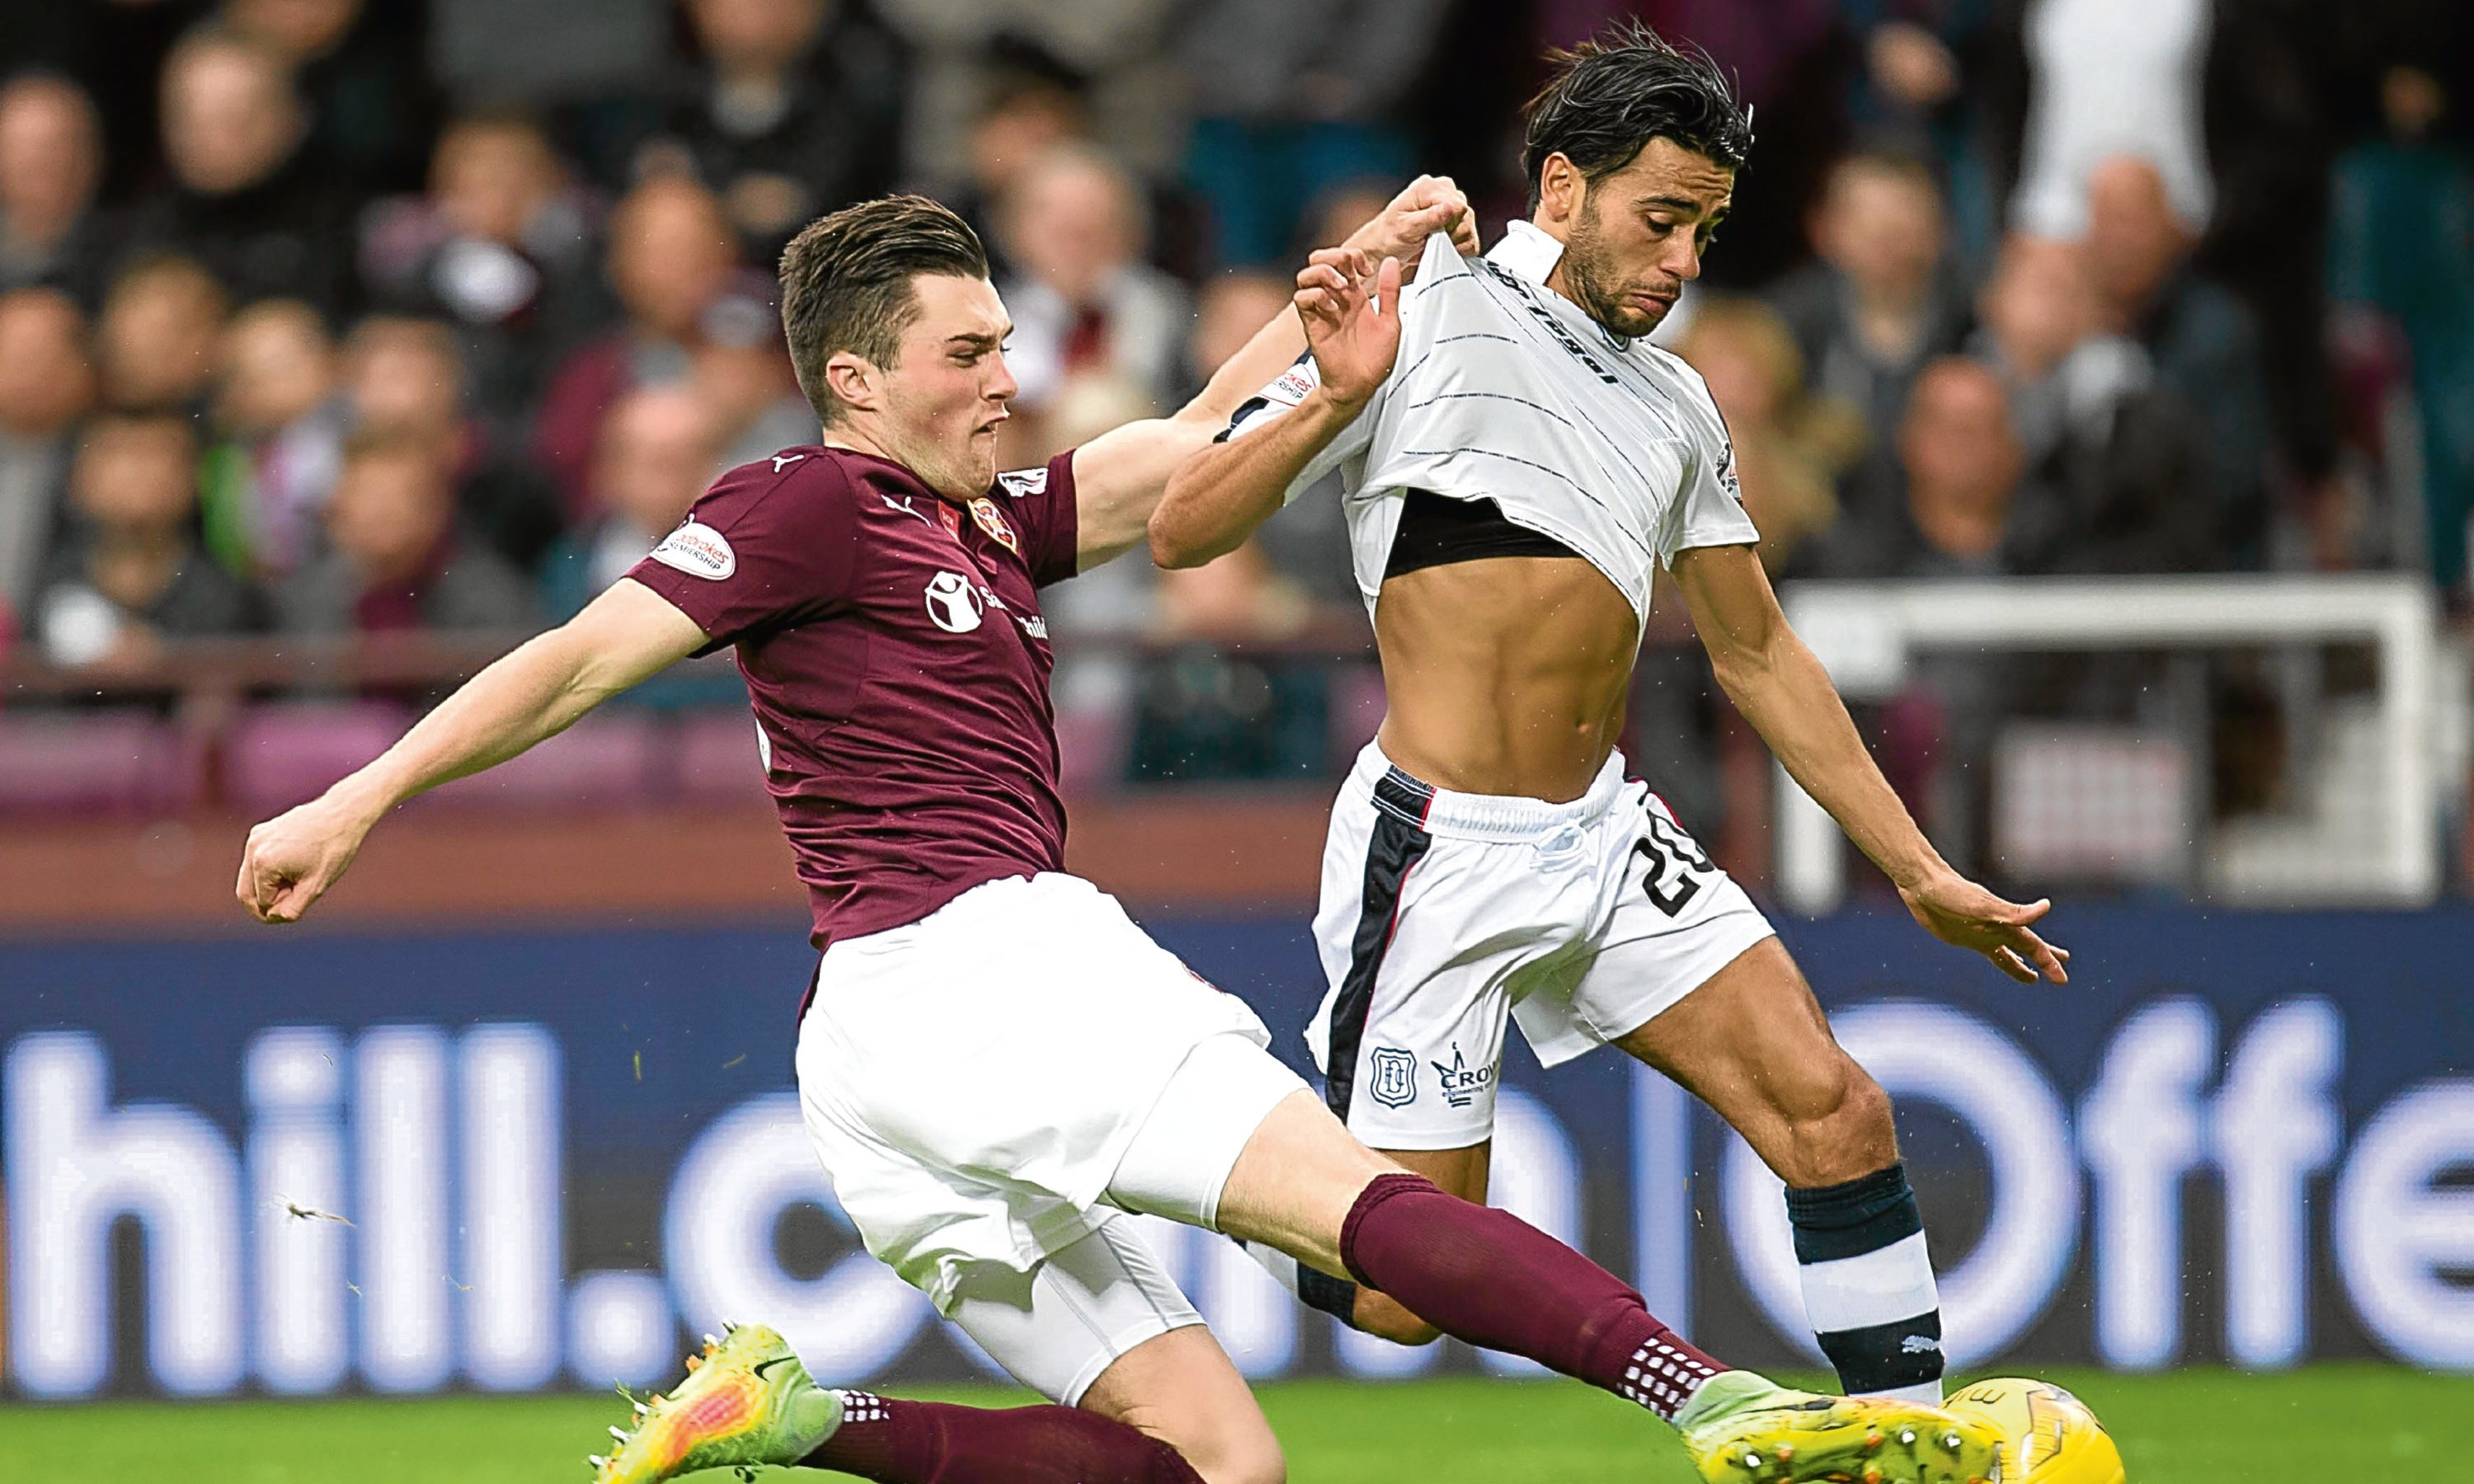 Hearts'' John Souttar tackles Dundee''s Faissal El Bakhtaoui during Saturday's game.